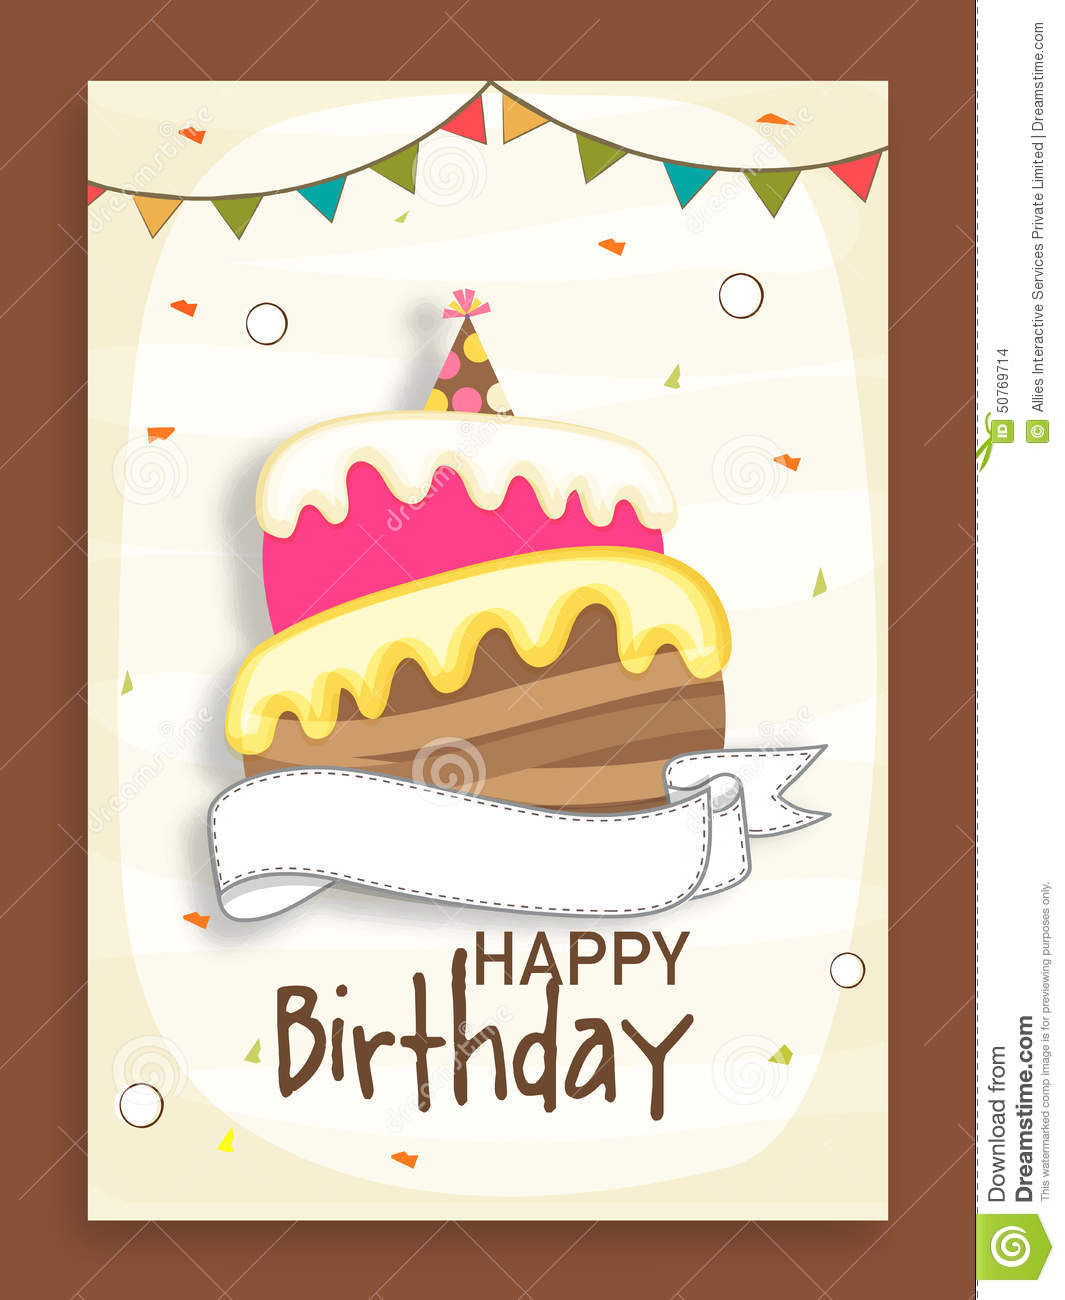 design an invitation card for your birthday party ; birthday-party-celebration-invitation-card-design-beautiful-decorated-flags-cake-50769714